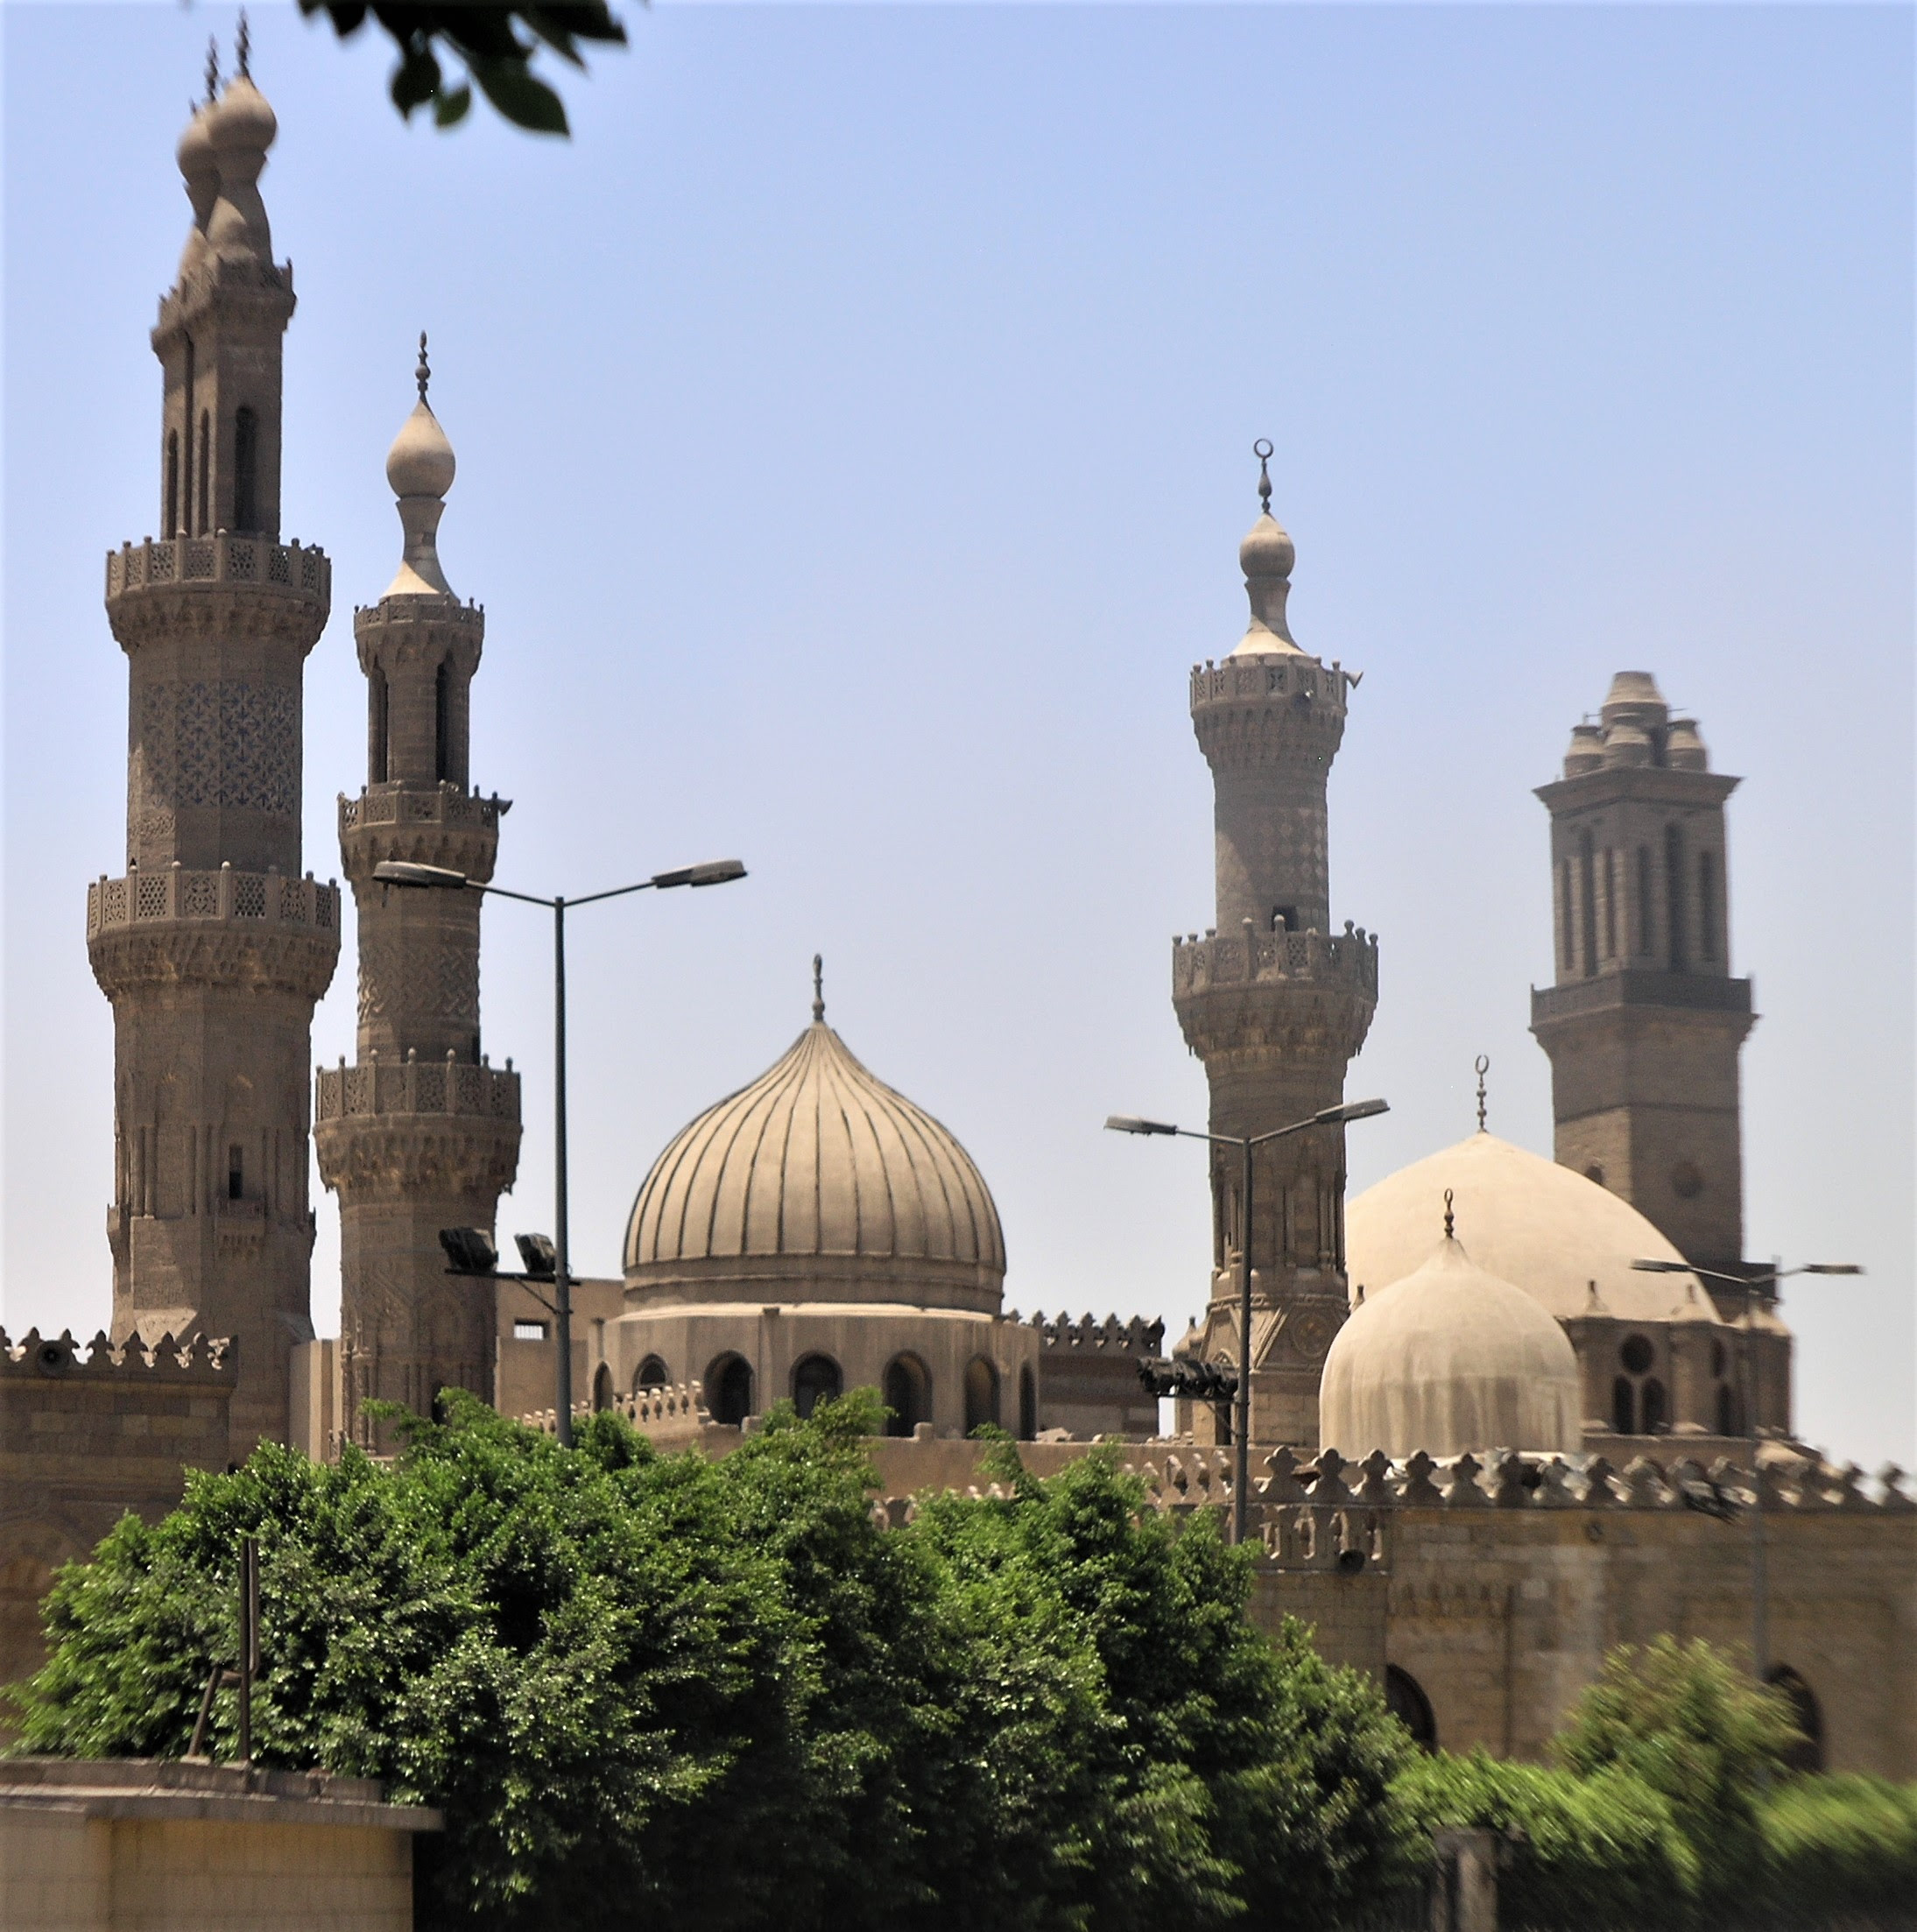 Al-Azhar Mosque in Cairo, Egypt. (Wikipedia, Daniel Mayer)